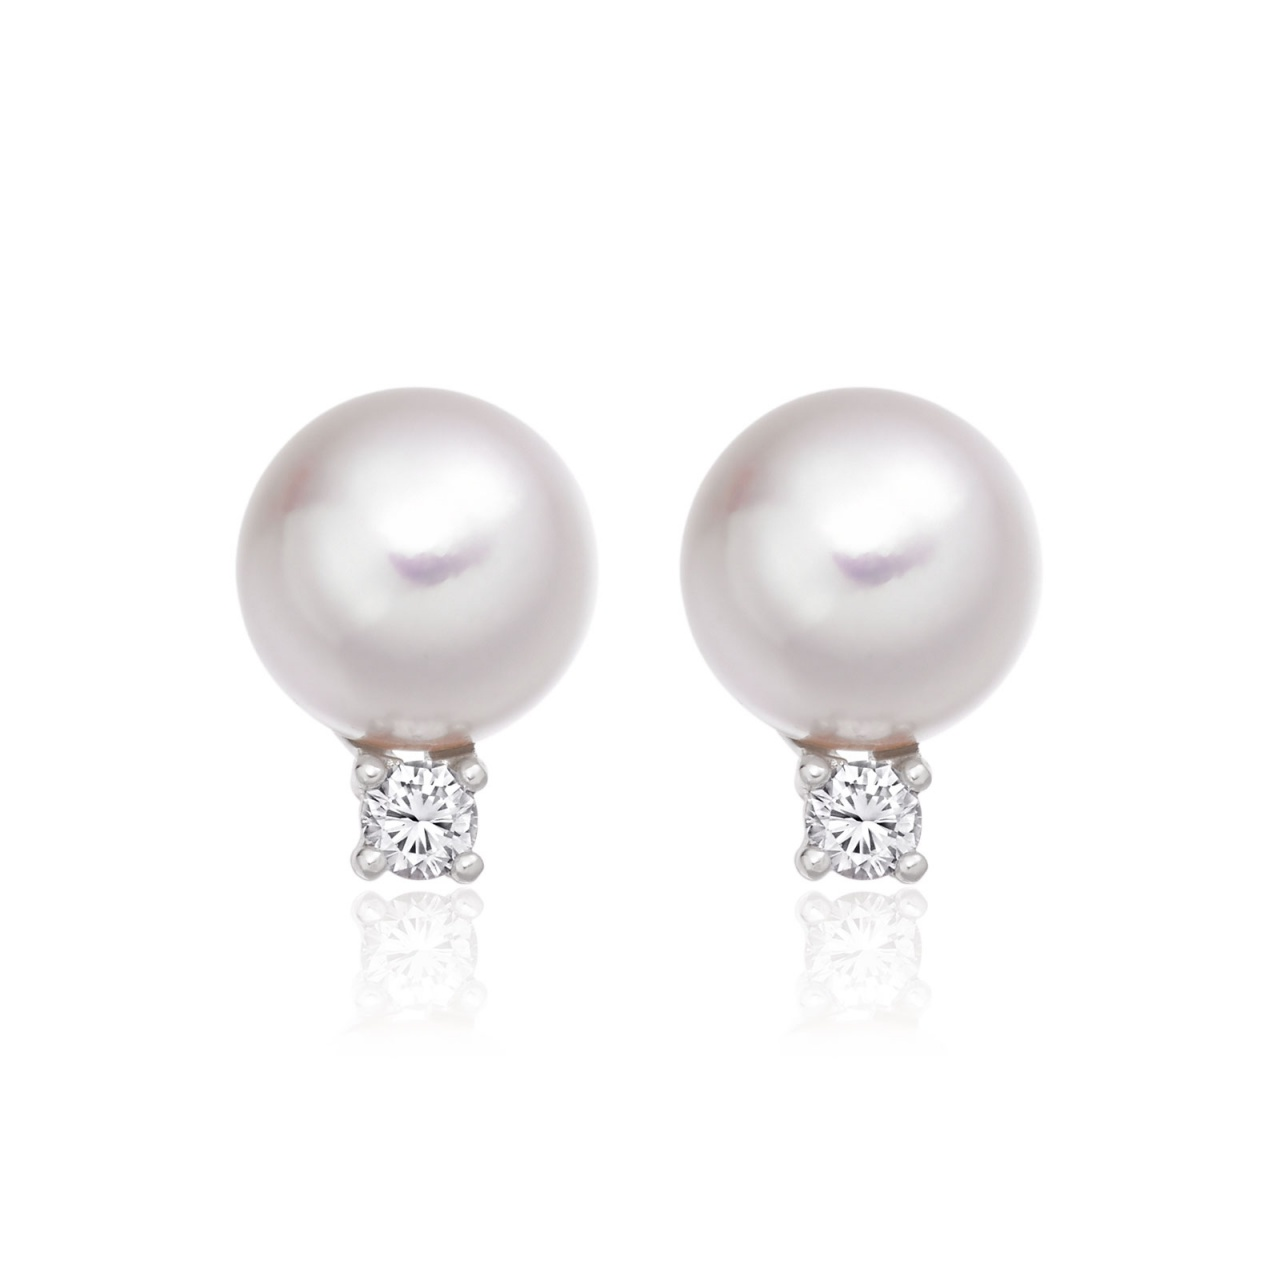 9mm Akoya Pearl and Diamond Stud Earrings in 18ct White Gold - AEWRWG0617-1